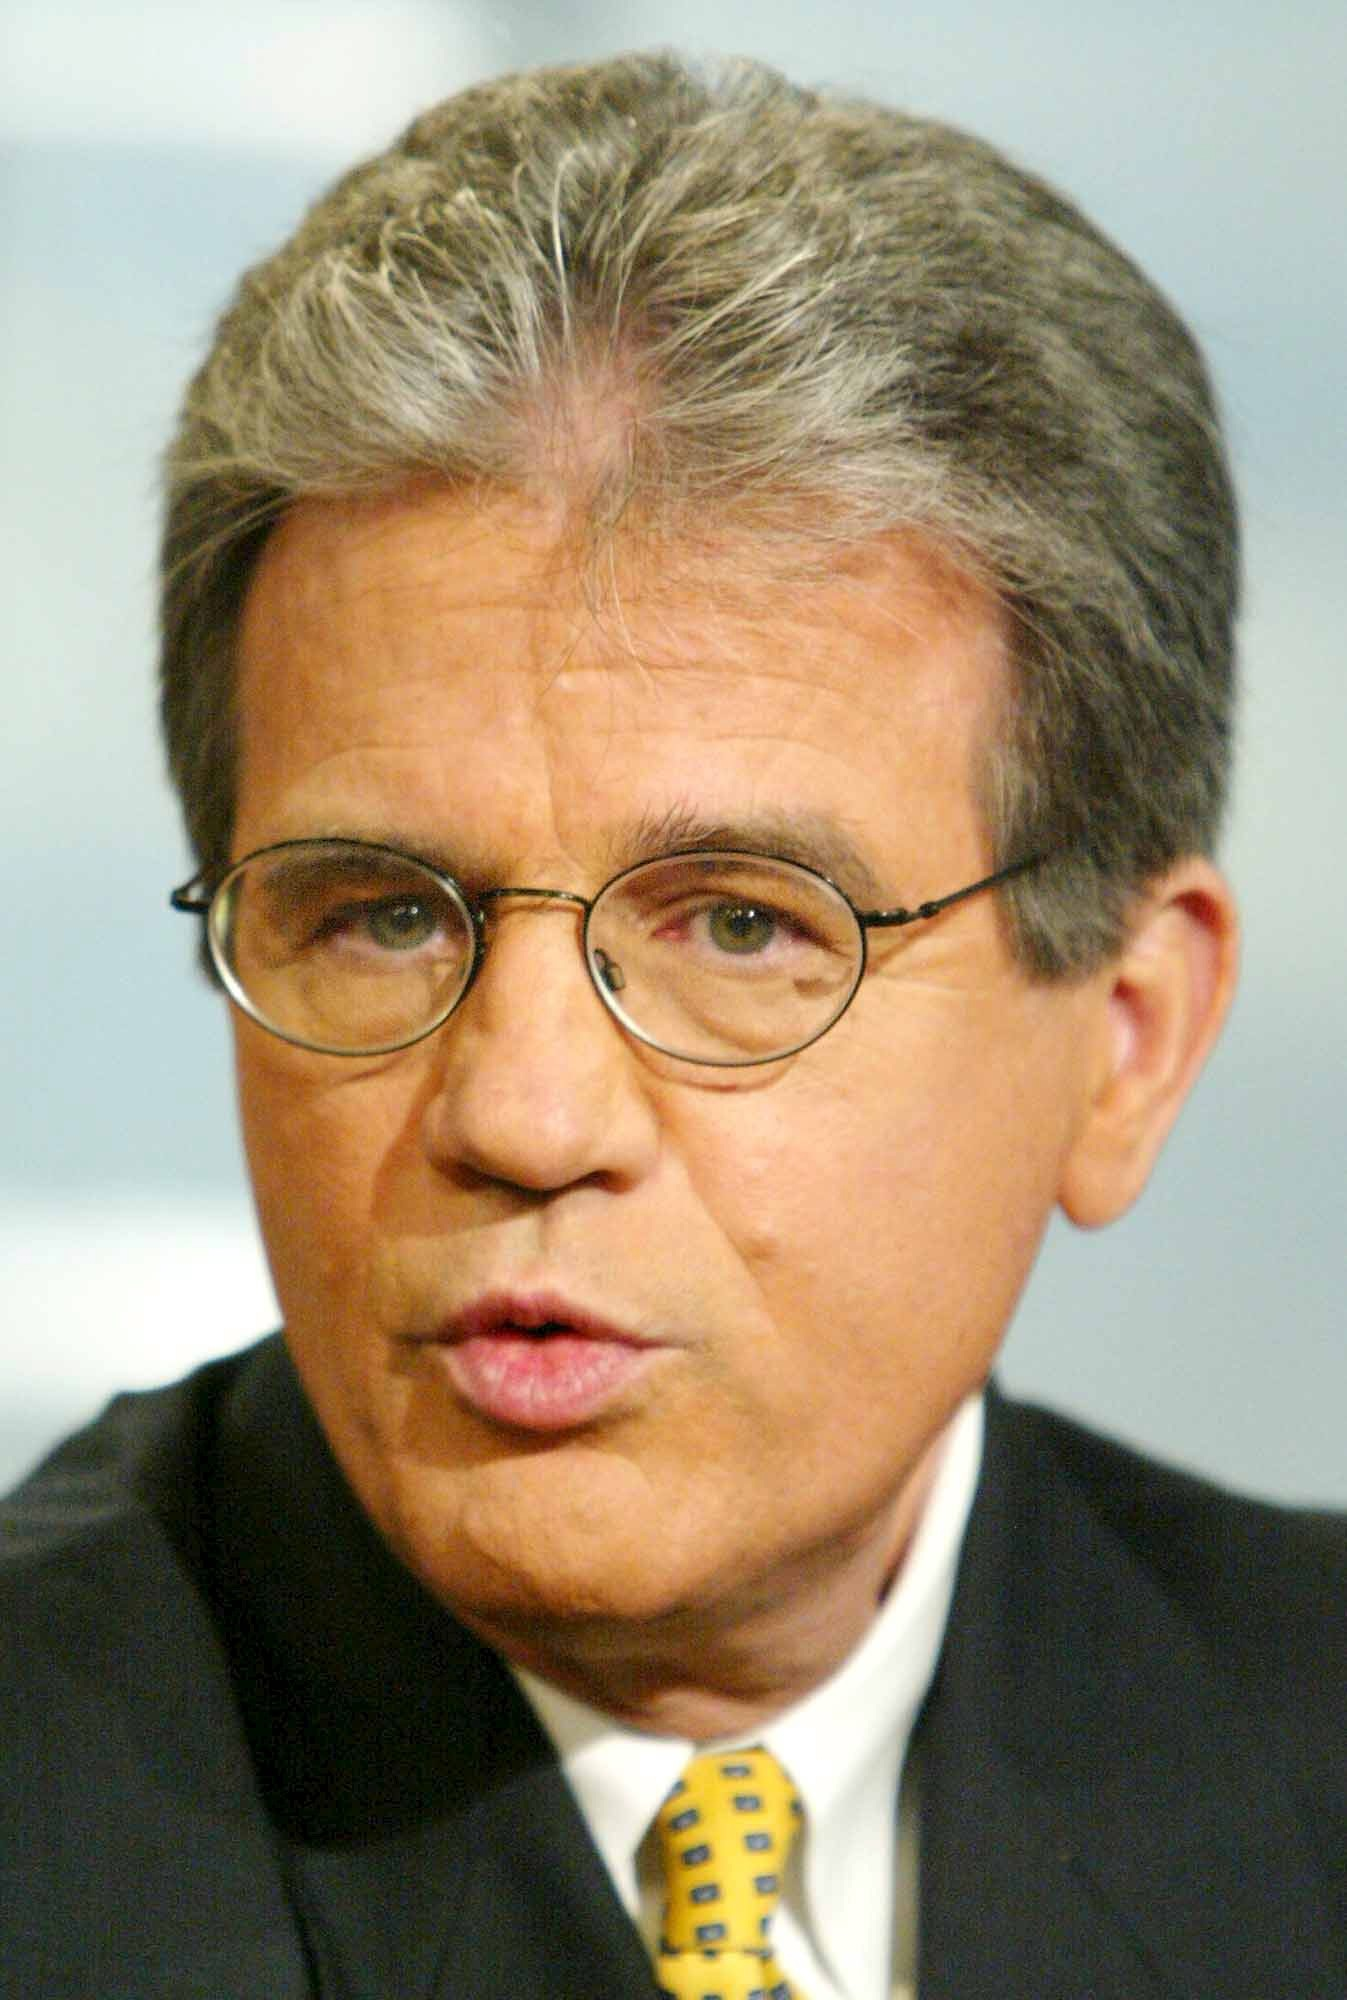 Senator Tom Coburn